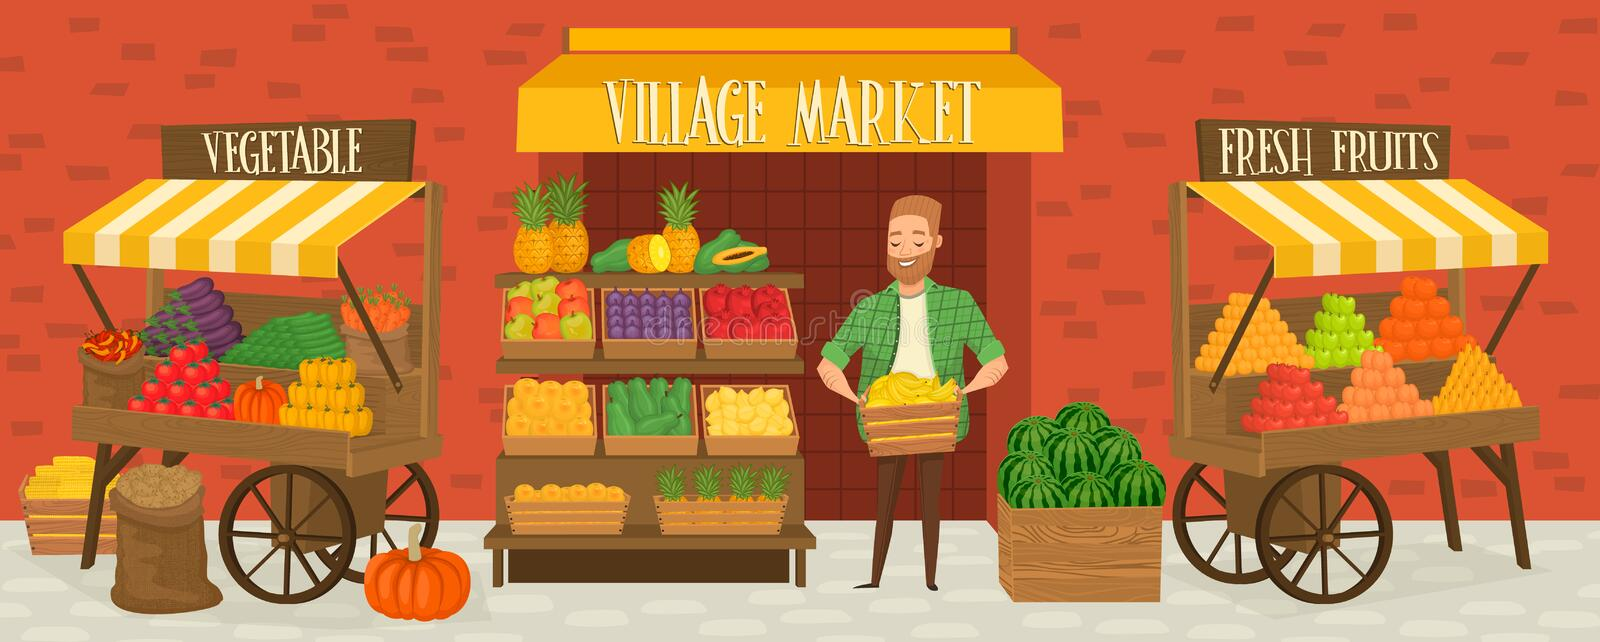 Farmers market. Local farmer shopkeeper. Seller fresh vegetables. Natural product. Village market. Food for a healthy lifestyle. Local shop. Vegetarian food royalty free illustration